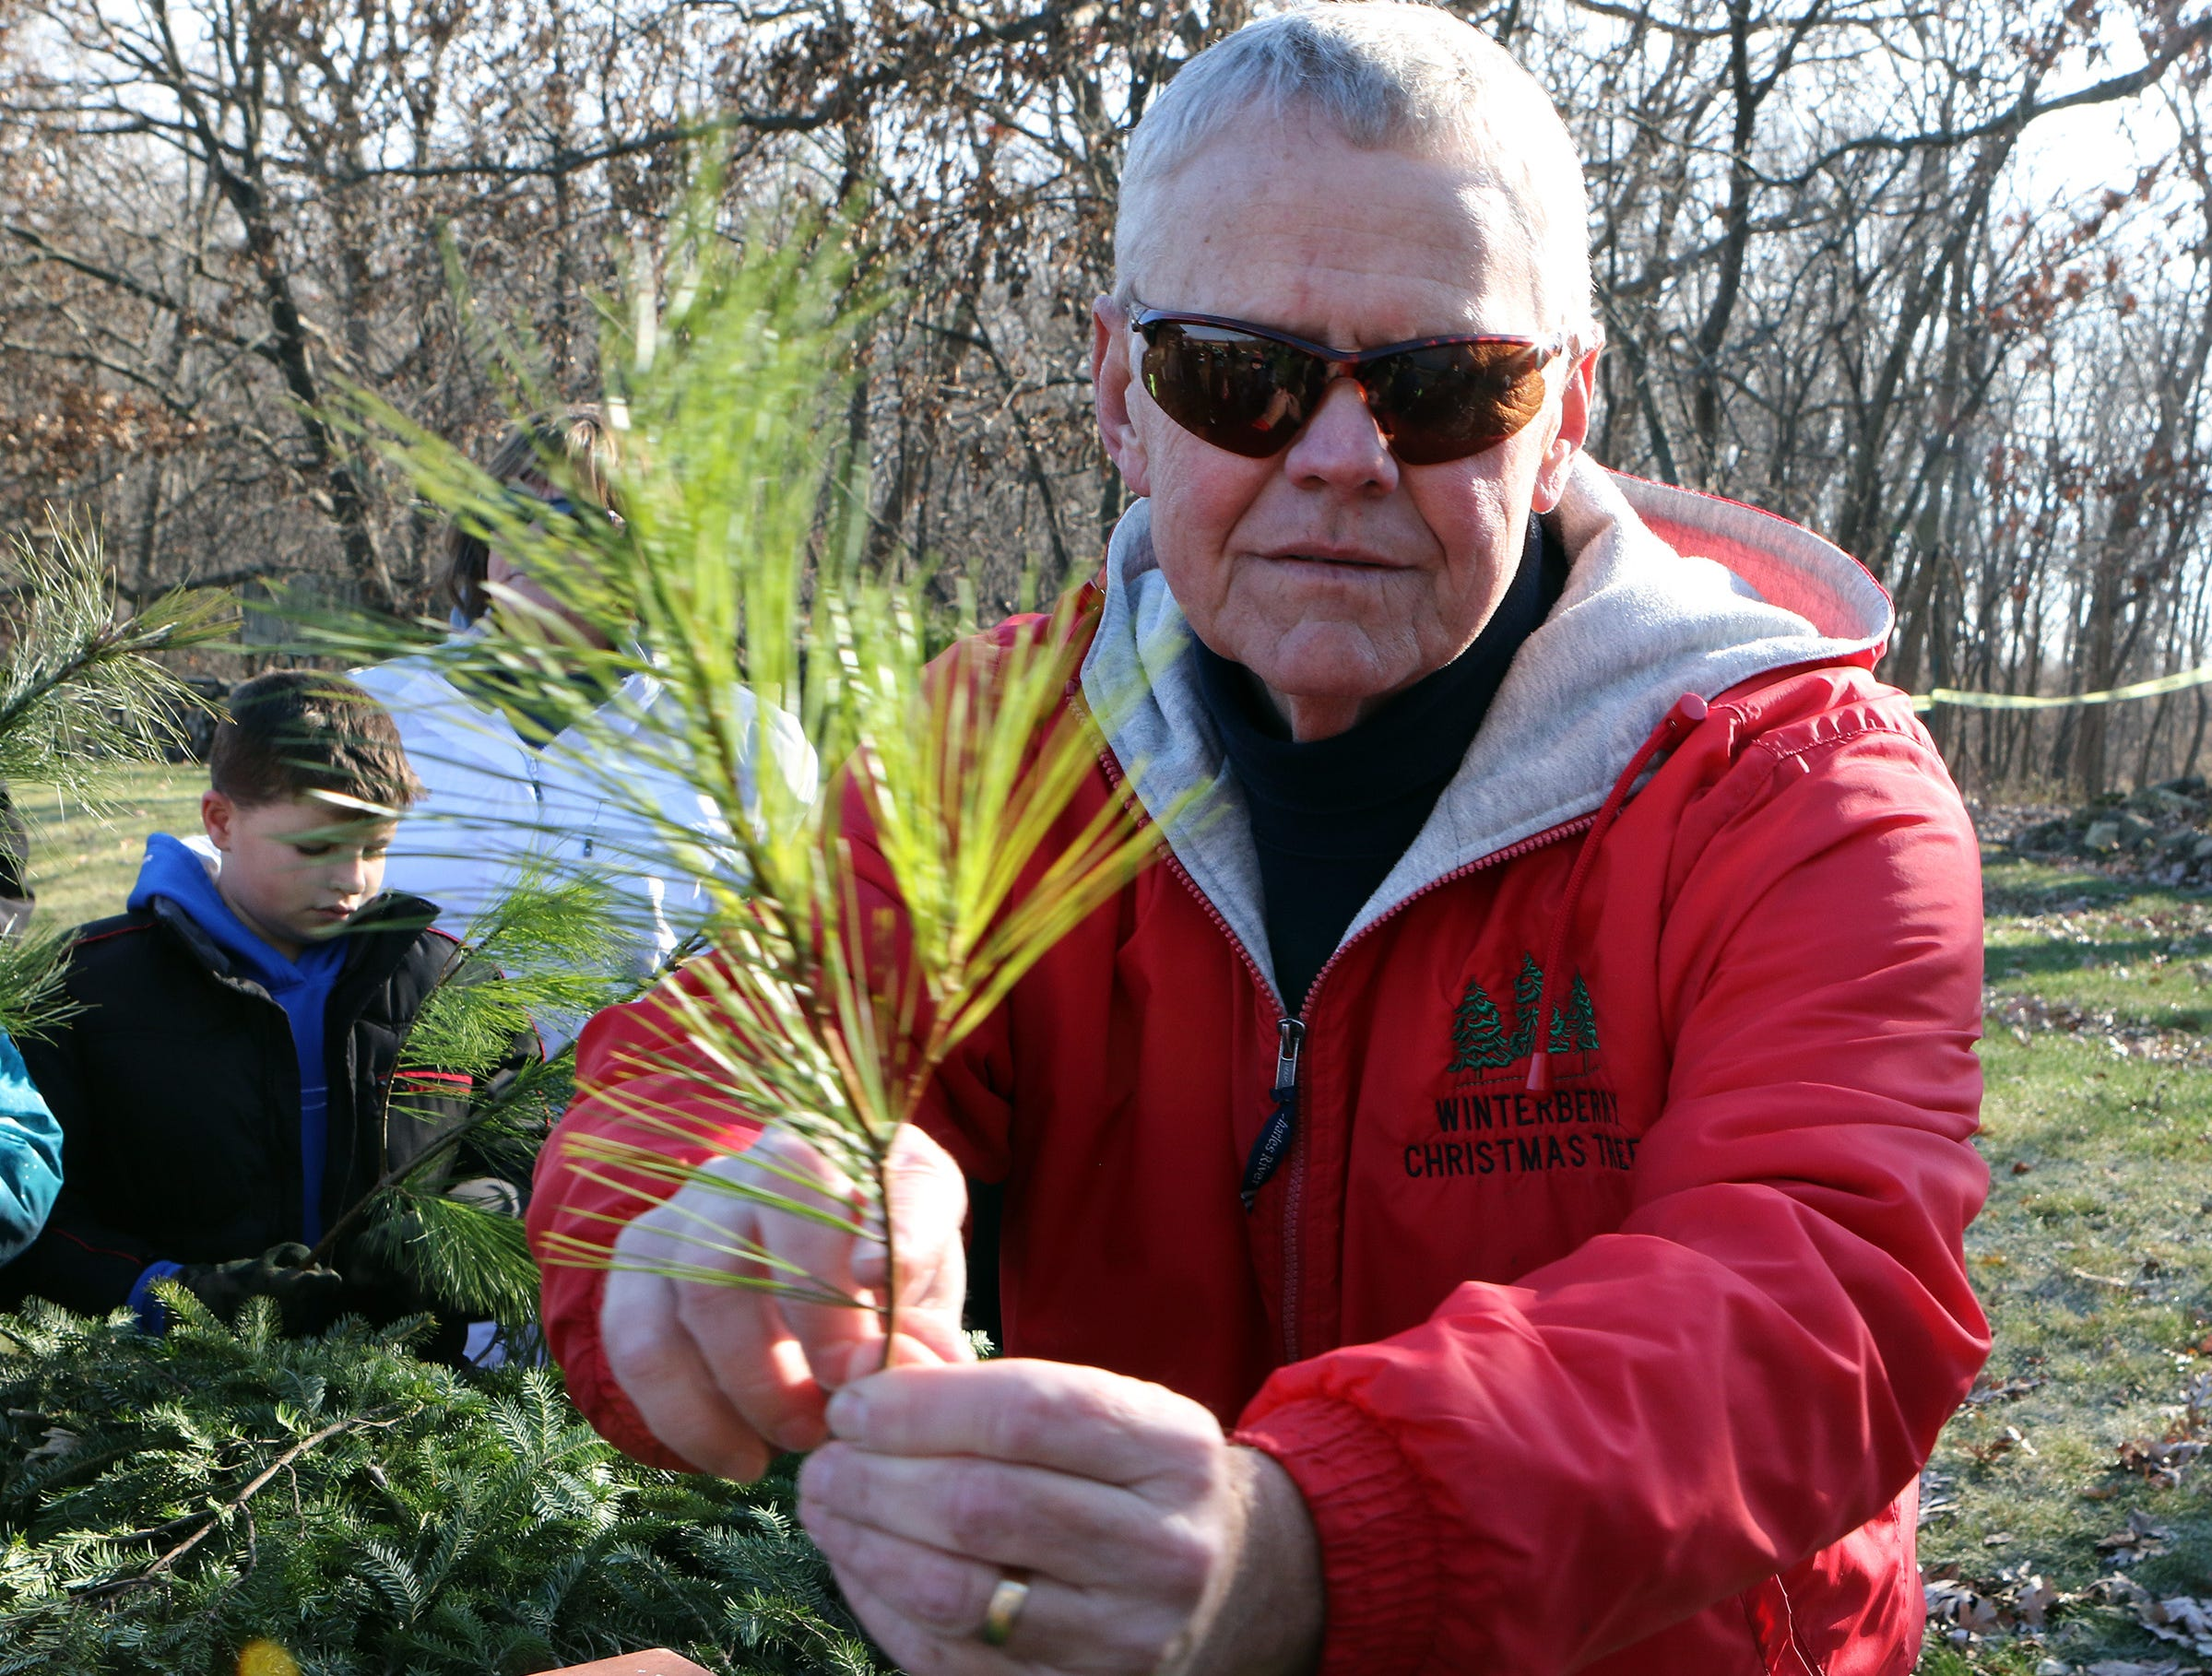 Greg Lancaster, owner of Lancaster's Winterberry Tree Farm in Brooklyn, shows fourth and fifth grade students how needles come off the branch on pine trees on Nov. 15. Students visited the farm to learn about the Christmas tree industry and to see Alice in Dairyland help cut a tree to mark the beginning of the 2018 Christmas tree season.